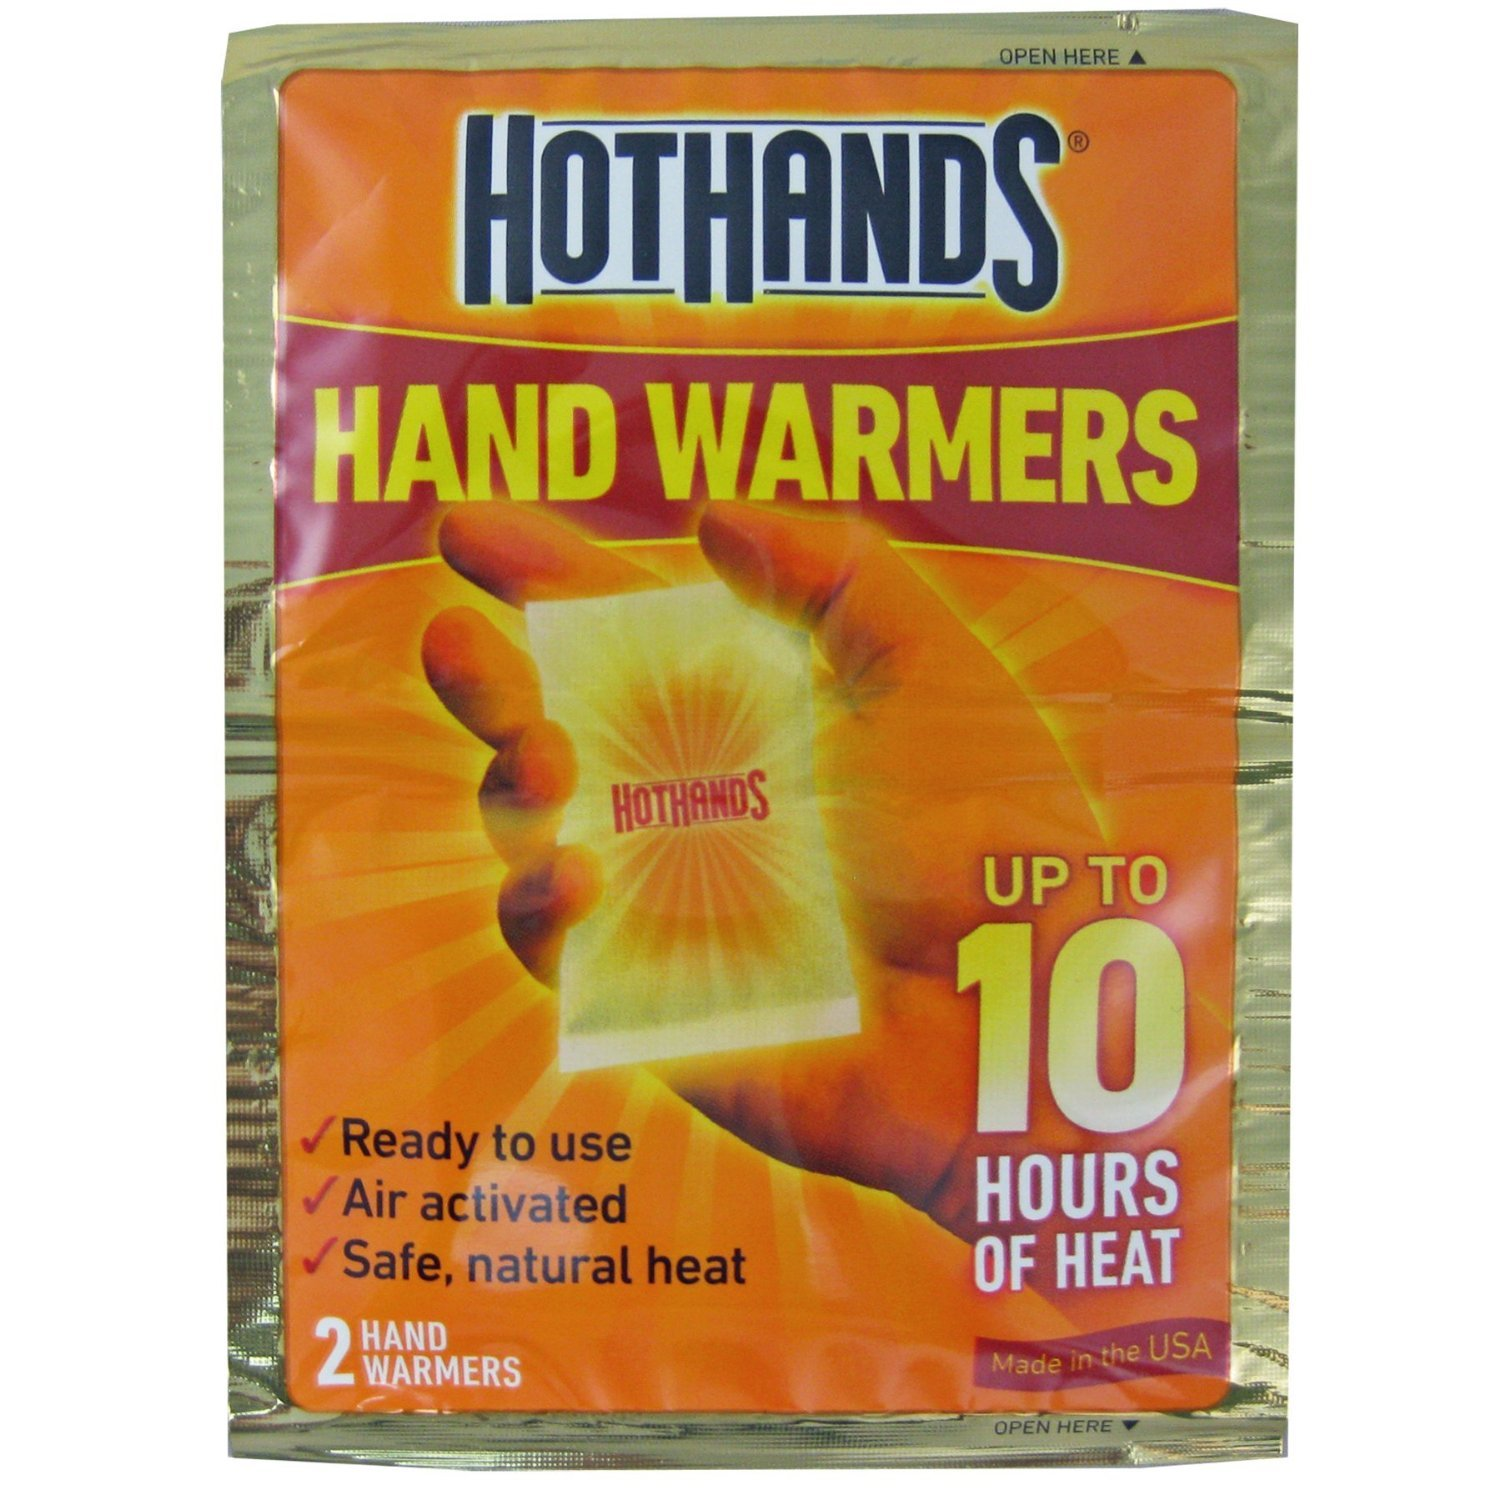 Hothands Hand Warmers Pair Economy Pack by HotHands   B00PHWFKXI